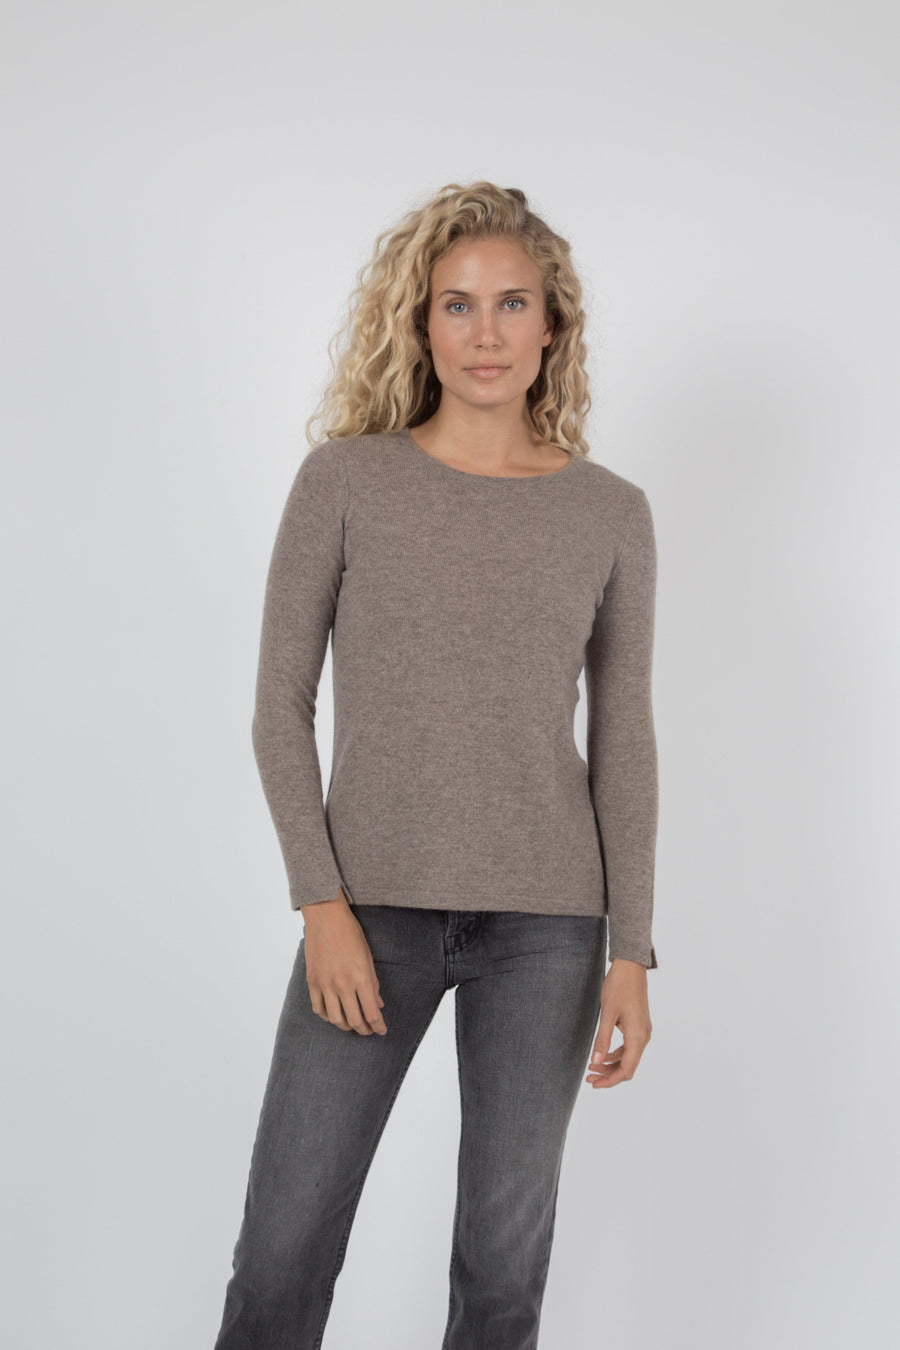 Cashmere Crew Sweater - Oatmeal